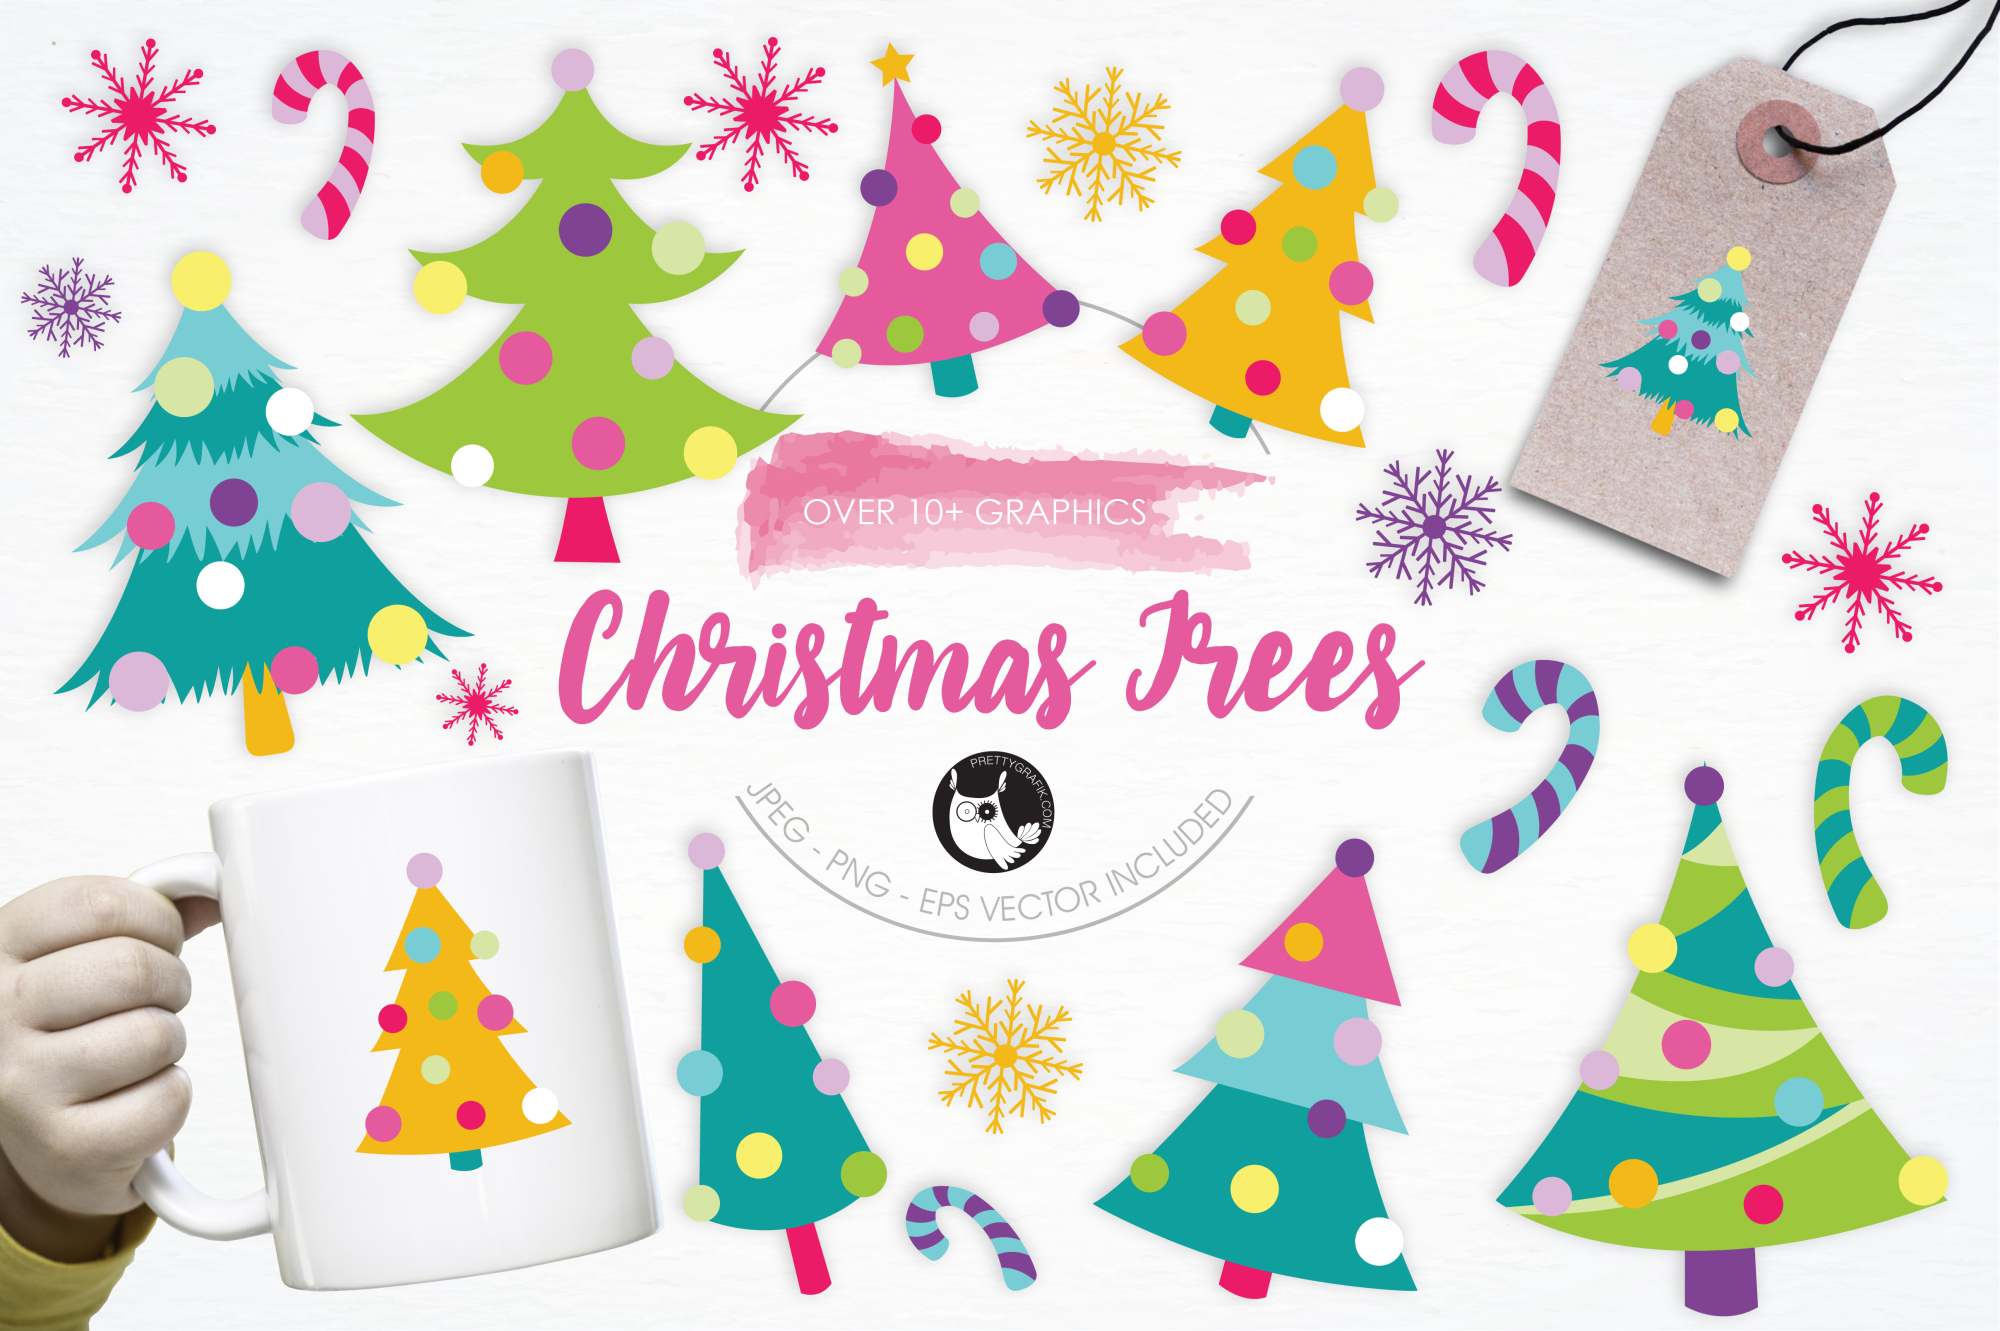 Christmas Trees graphics and illustrations example image 1